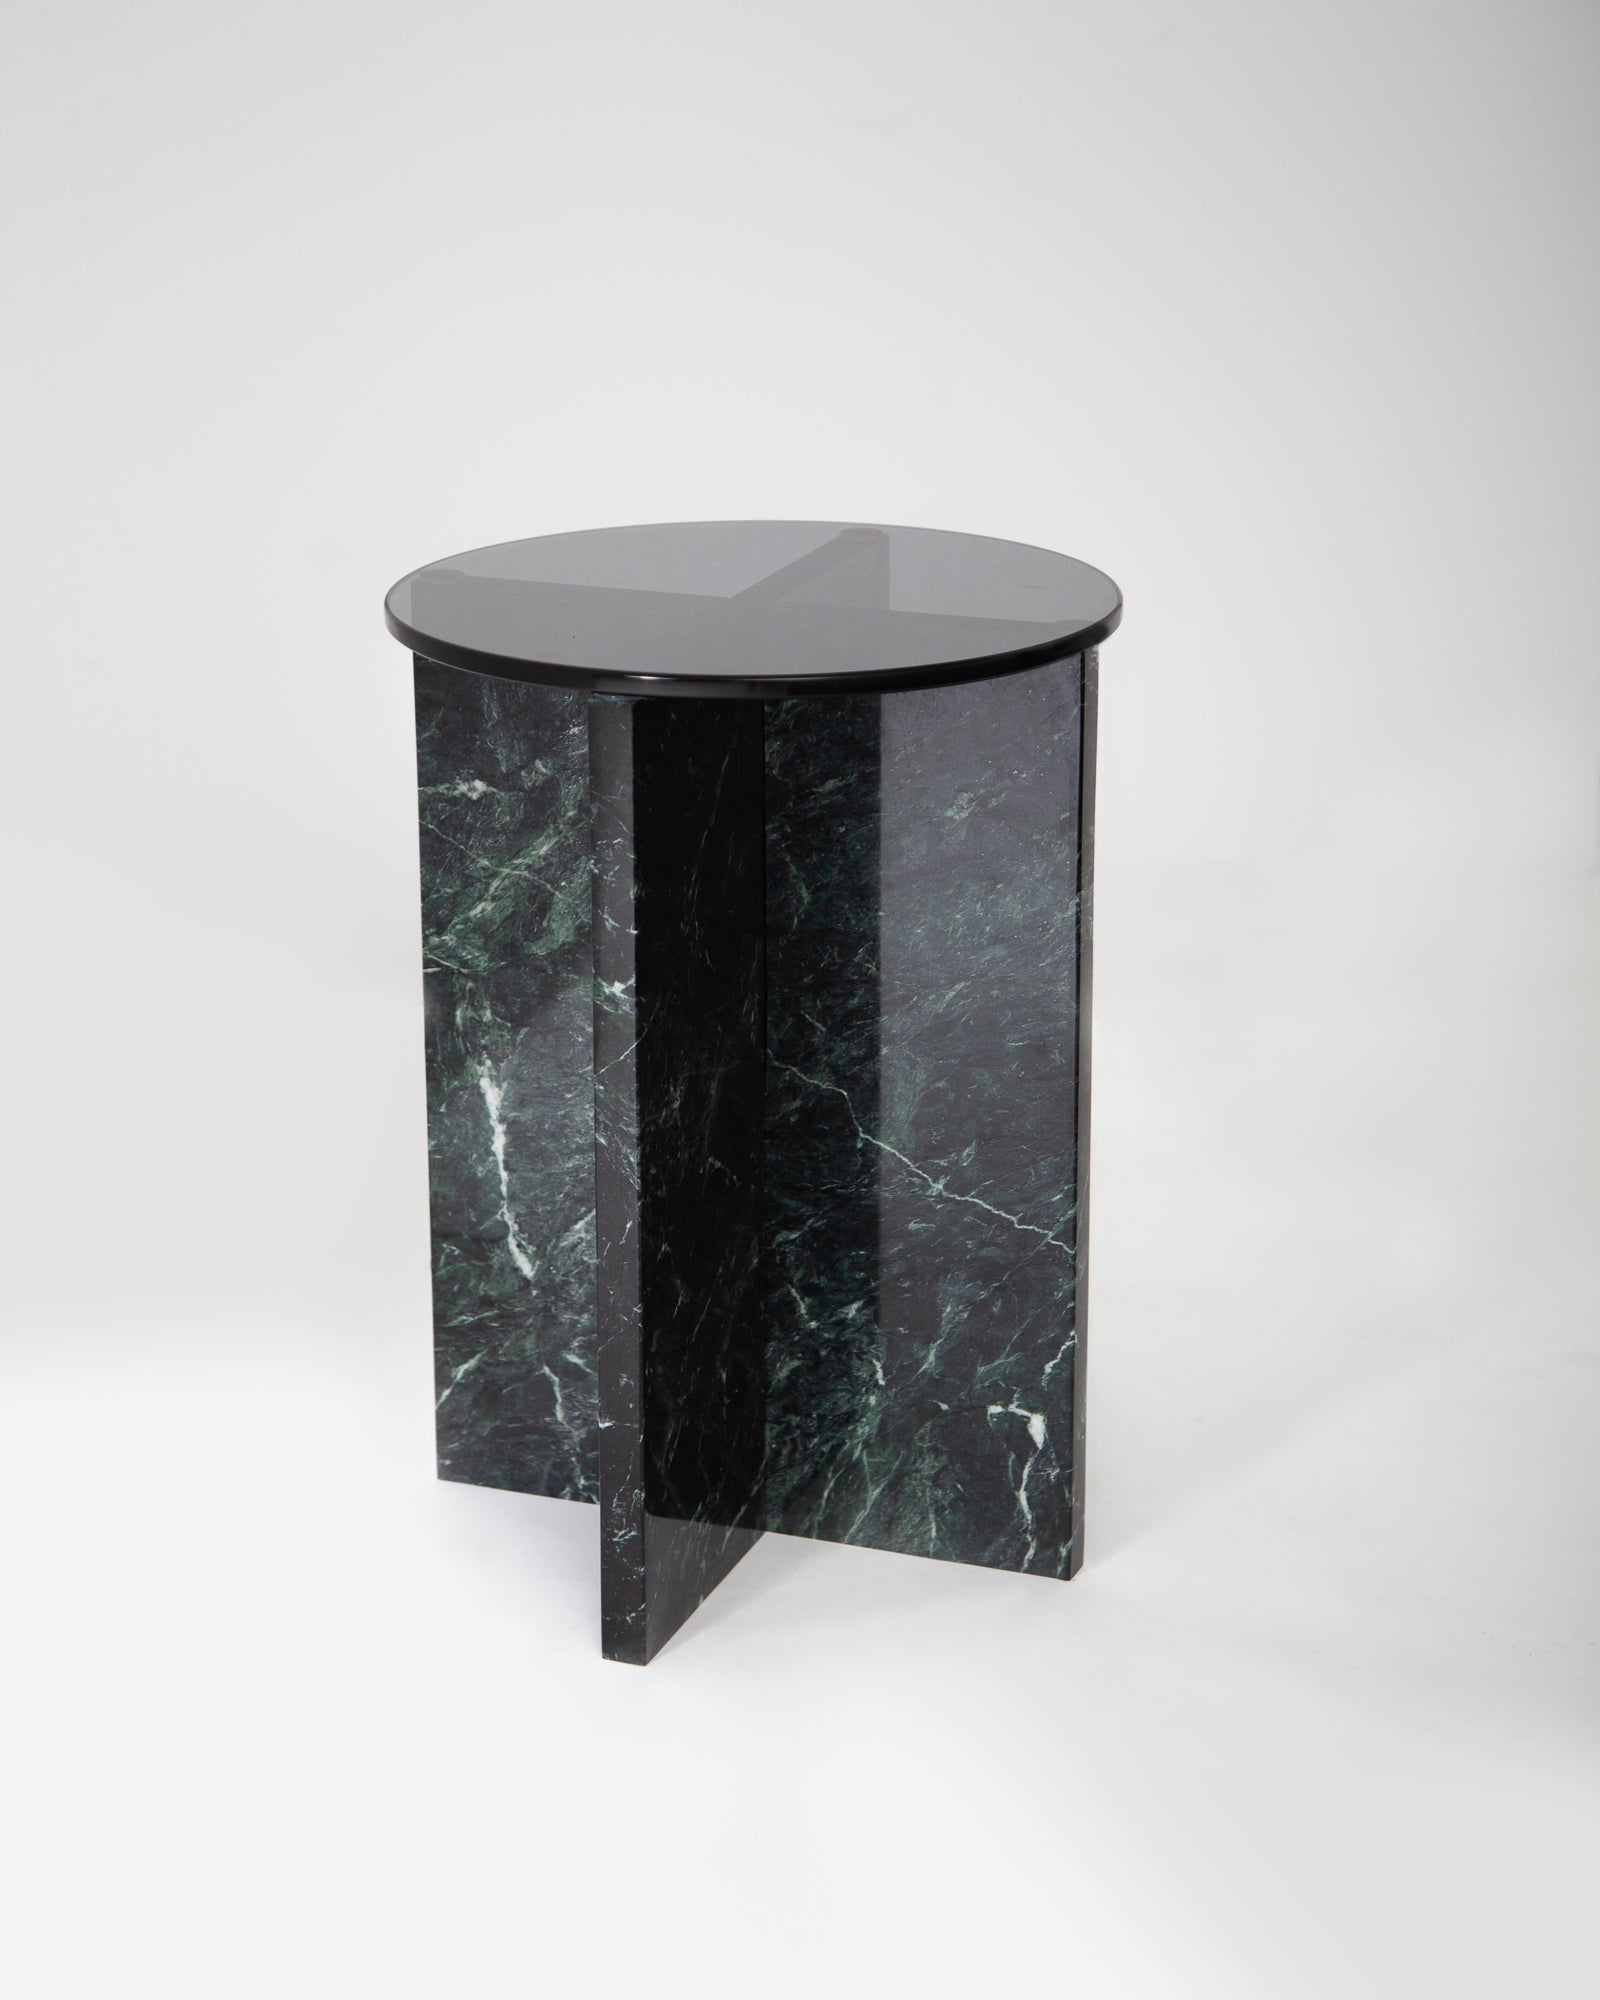 Marble flat-pack side table for beside sofa or accent table.